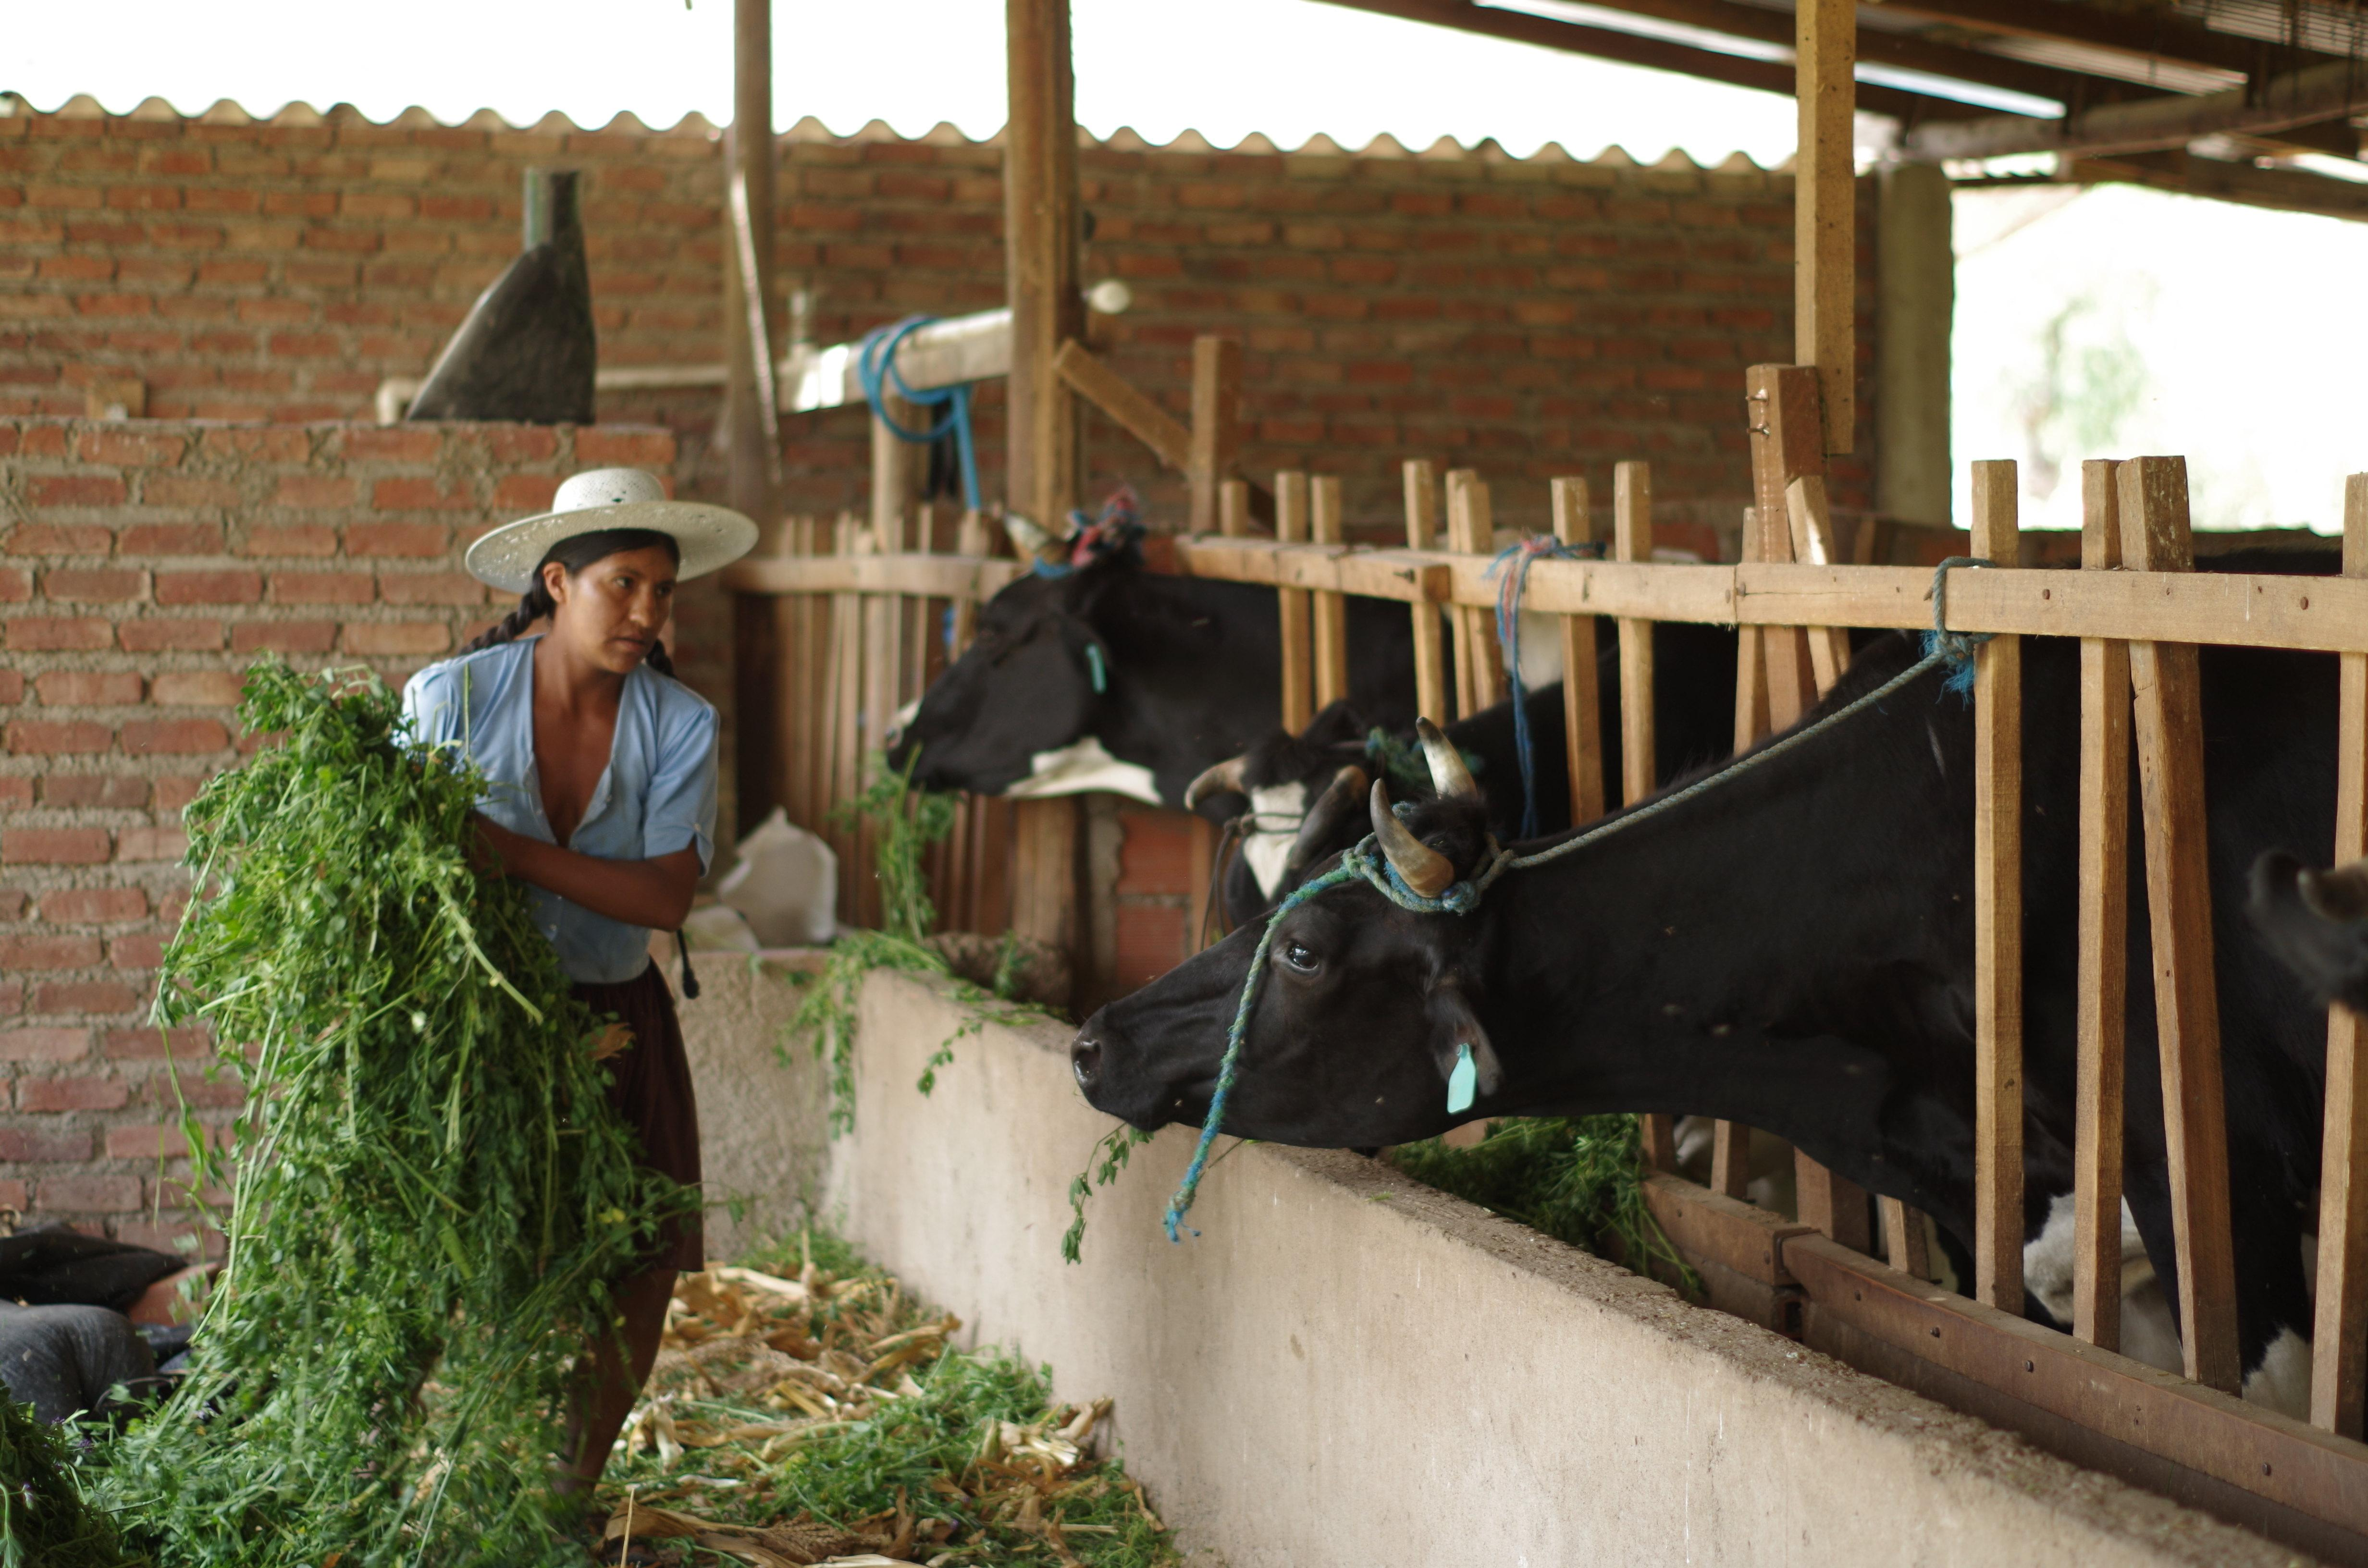 Beneficial micro-organisms for resilient dairy farming